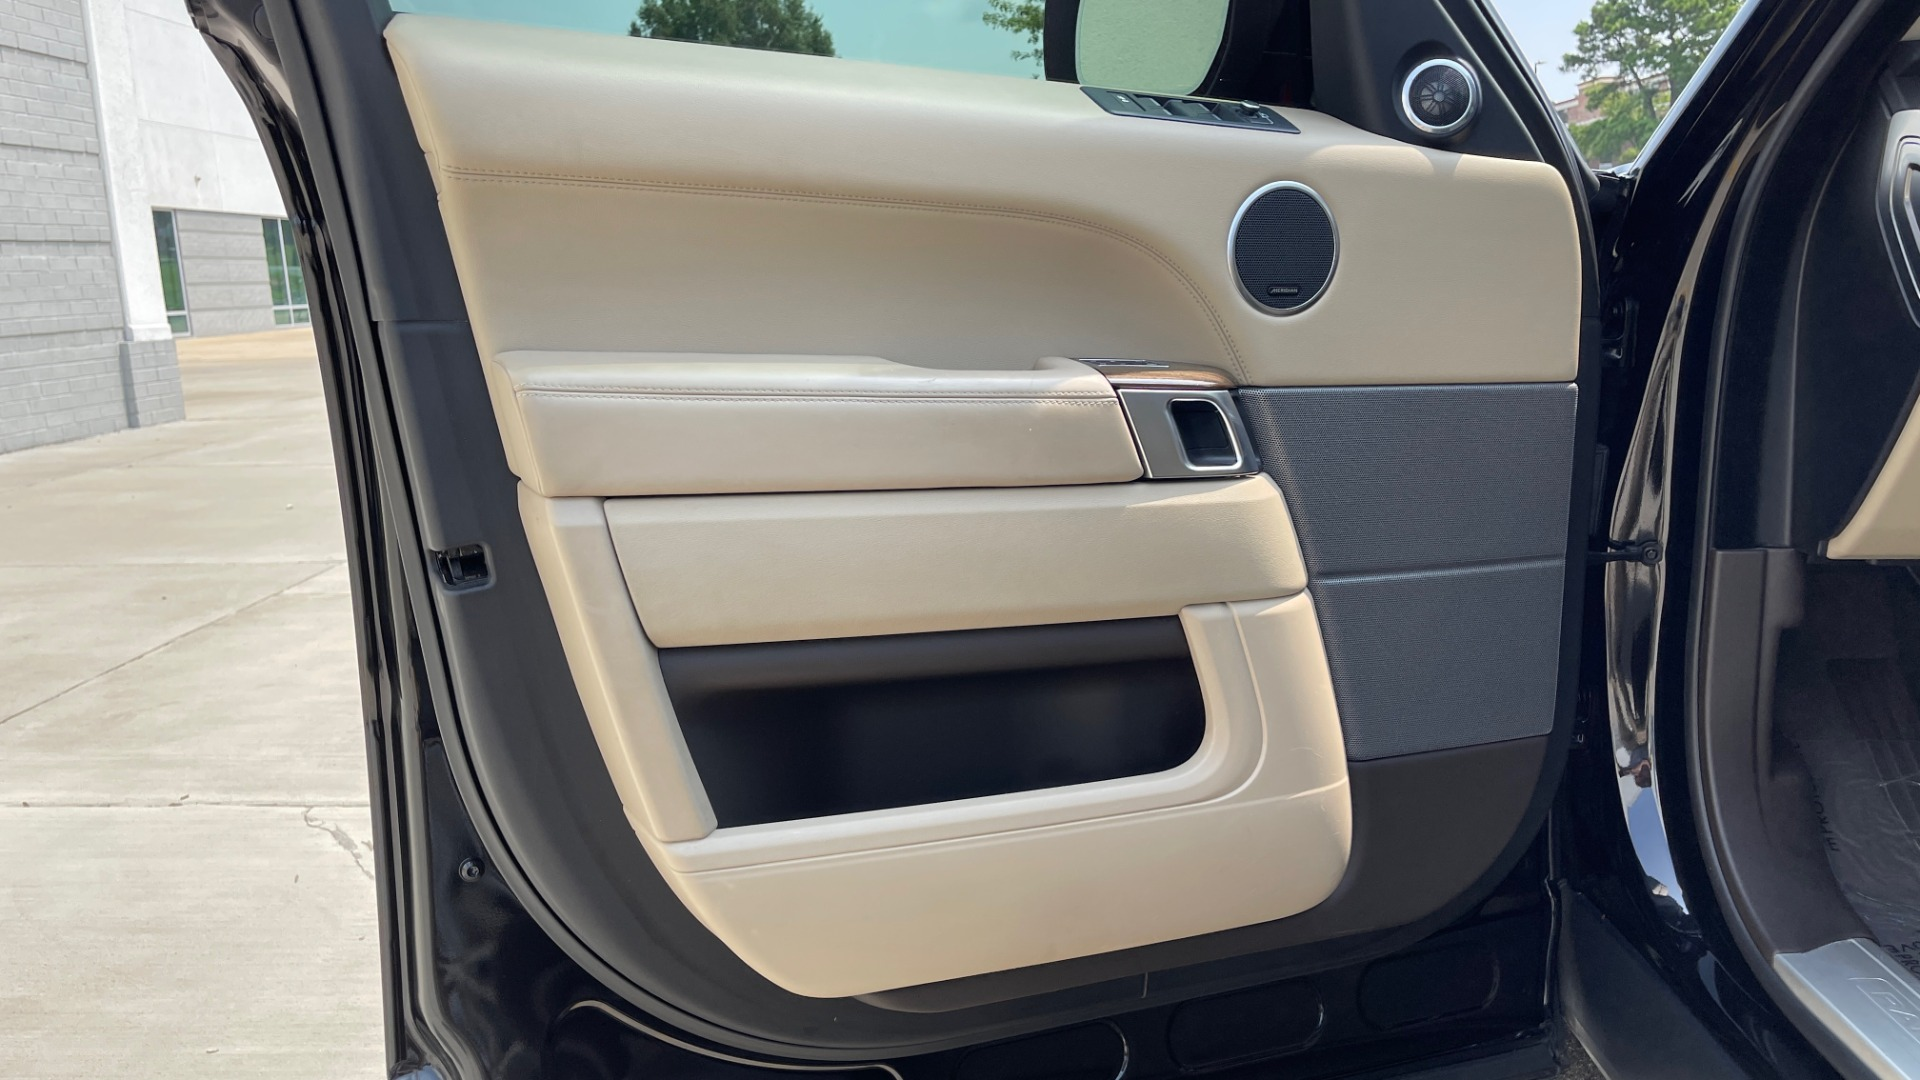 Used 2016 Land Rover RANGE ROVER SPORT V6 HSE / NAV / PANO-ROOF / MERIDIAN / CONSOLE COOLER / CAMERAS for sale $40,995 at Formula Imports in Charlotte NC 28227 26